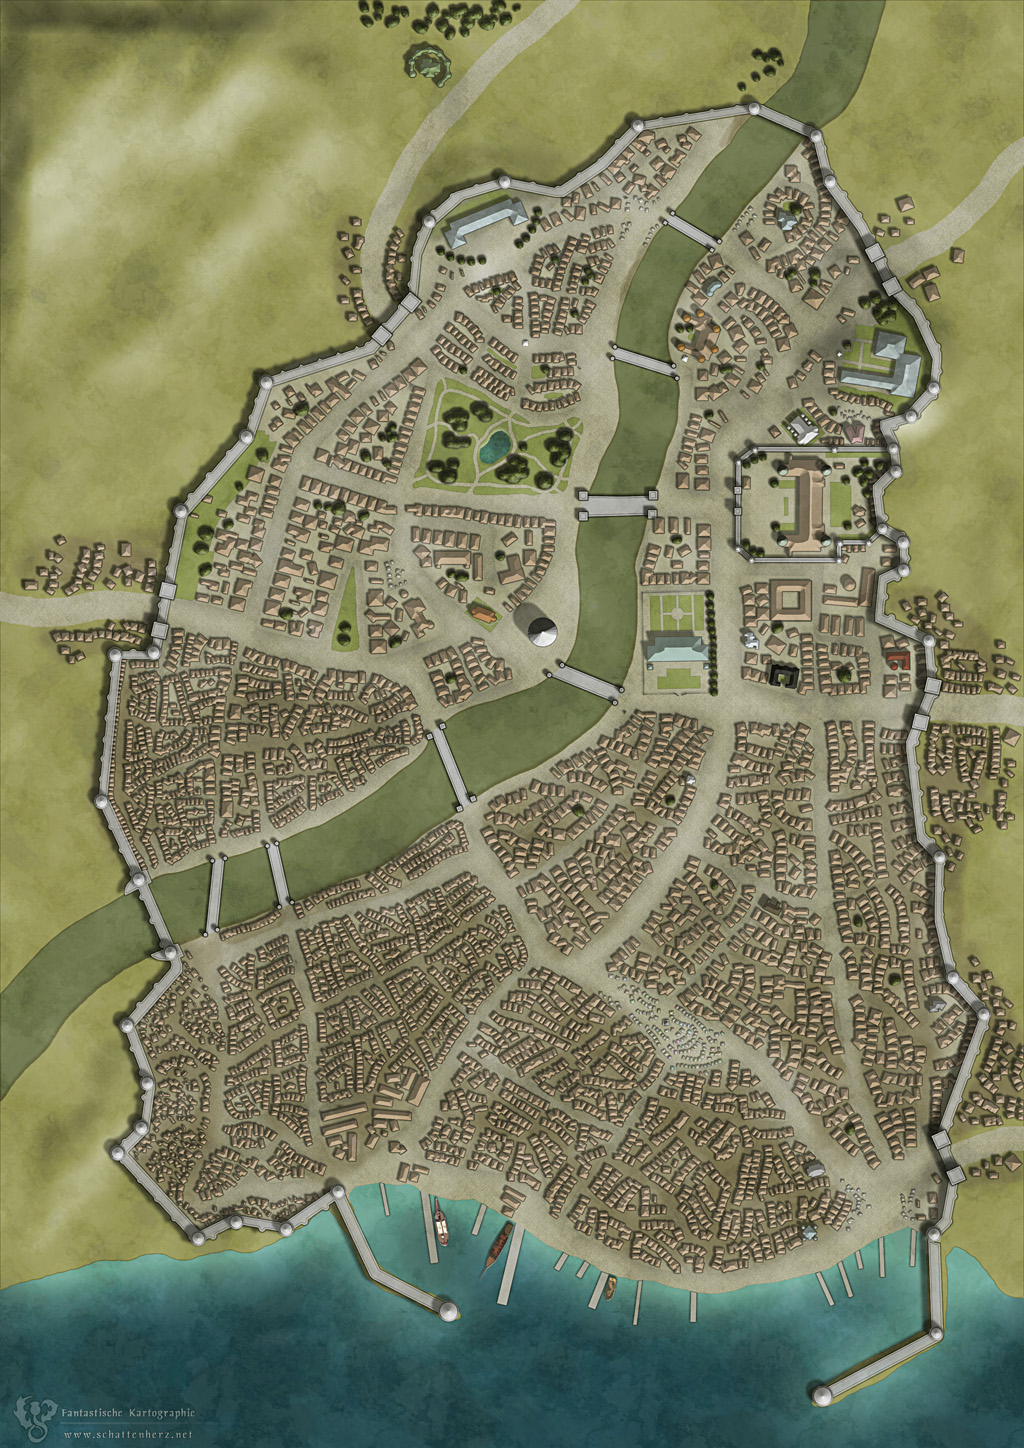 Nir'alenar